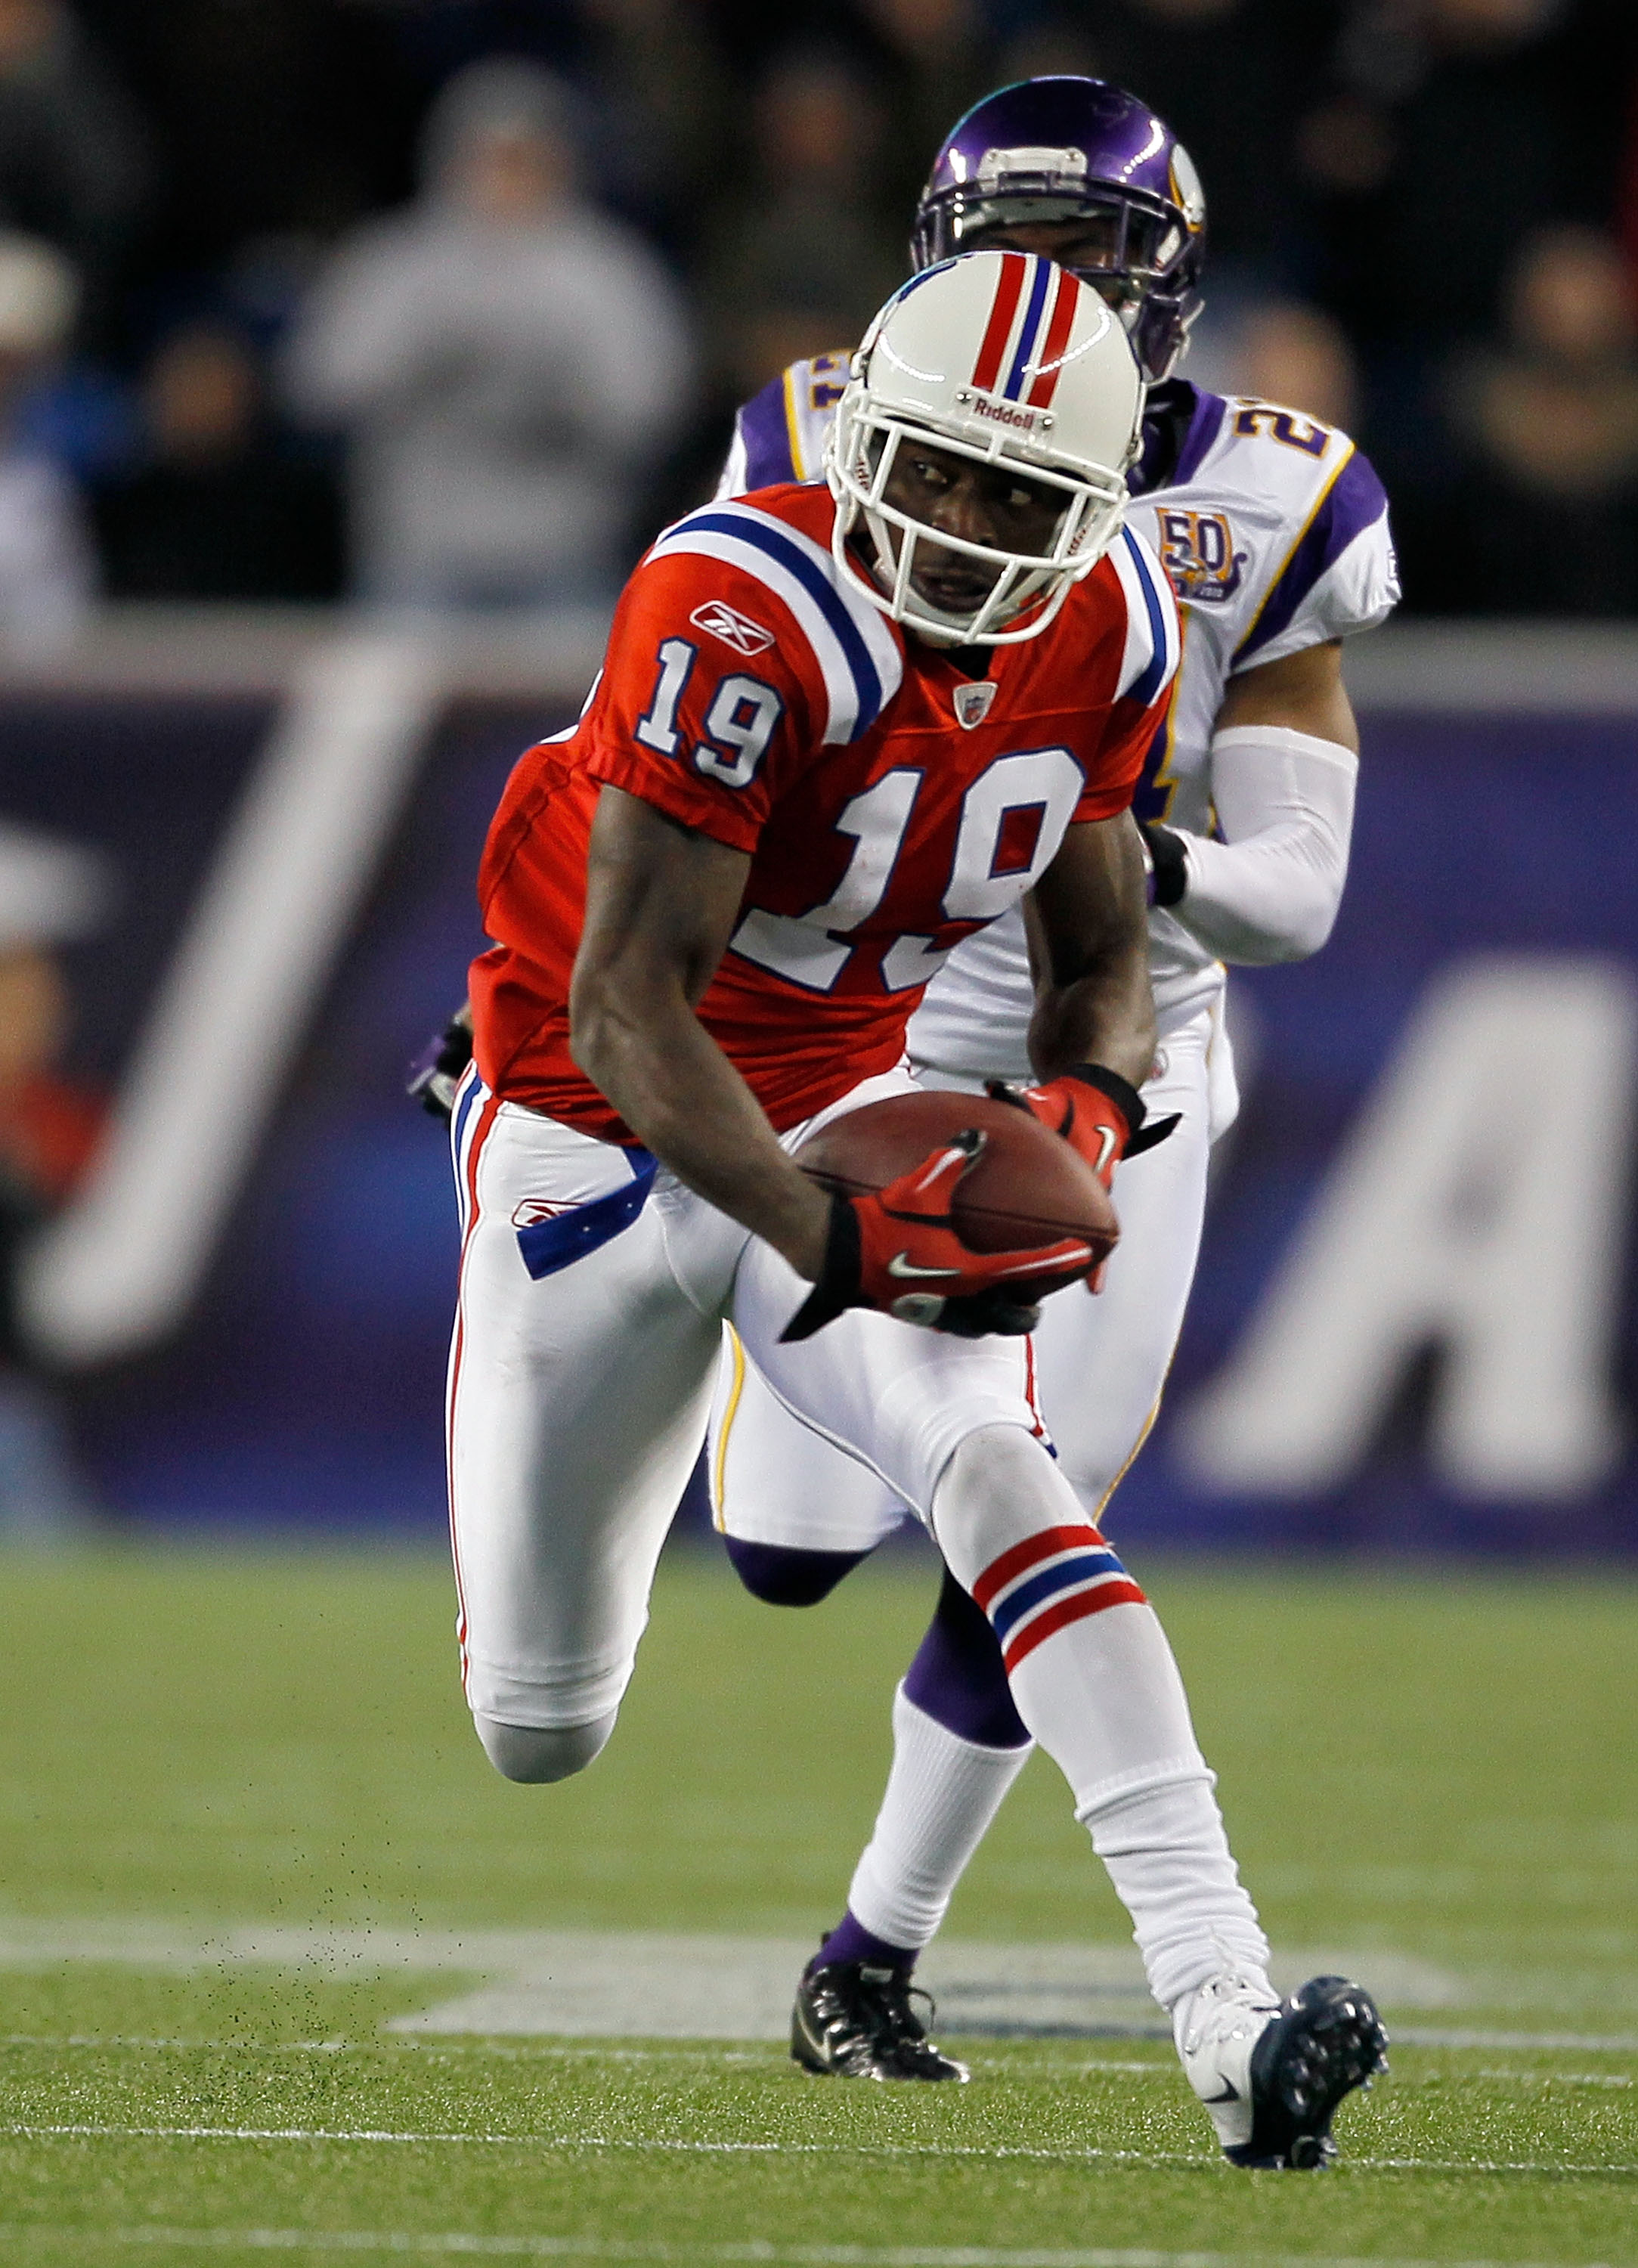 FOXBORO, MA - OCTOBER 31:  Brandon Tate #19 of the New England Patriots runs the ball into the end zone for a touchdown in the third quarter against the Minnesota Vikings at Gillette Stadium on October 31, 2010 in Foxboro, Massachusetts. (Photo by Jim Rog